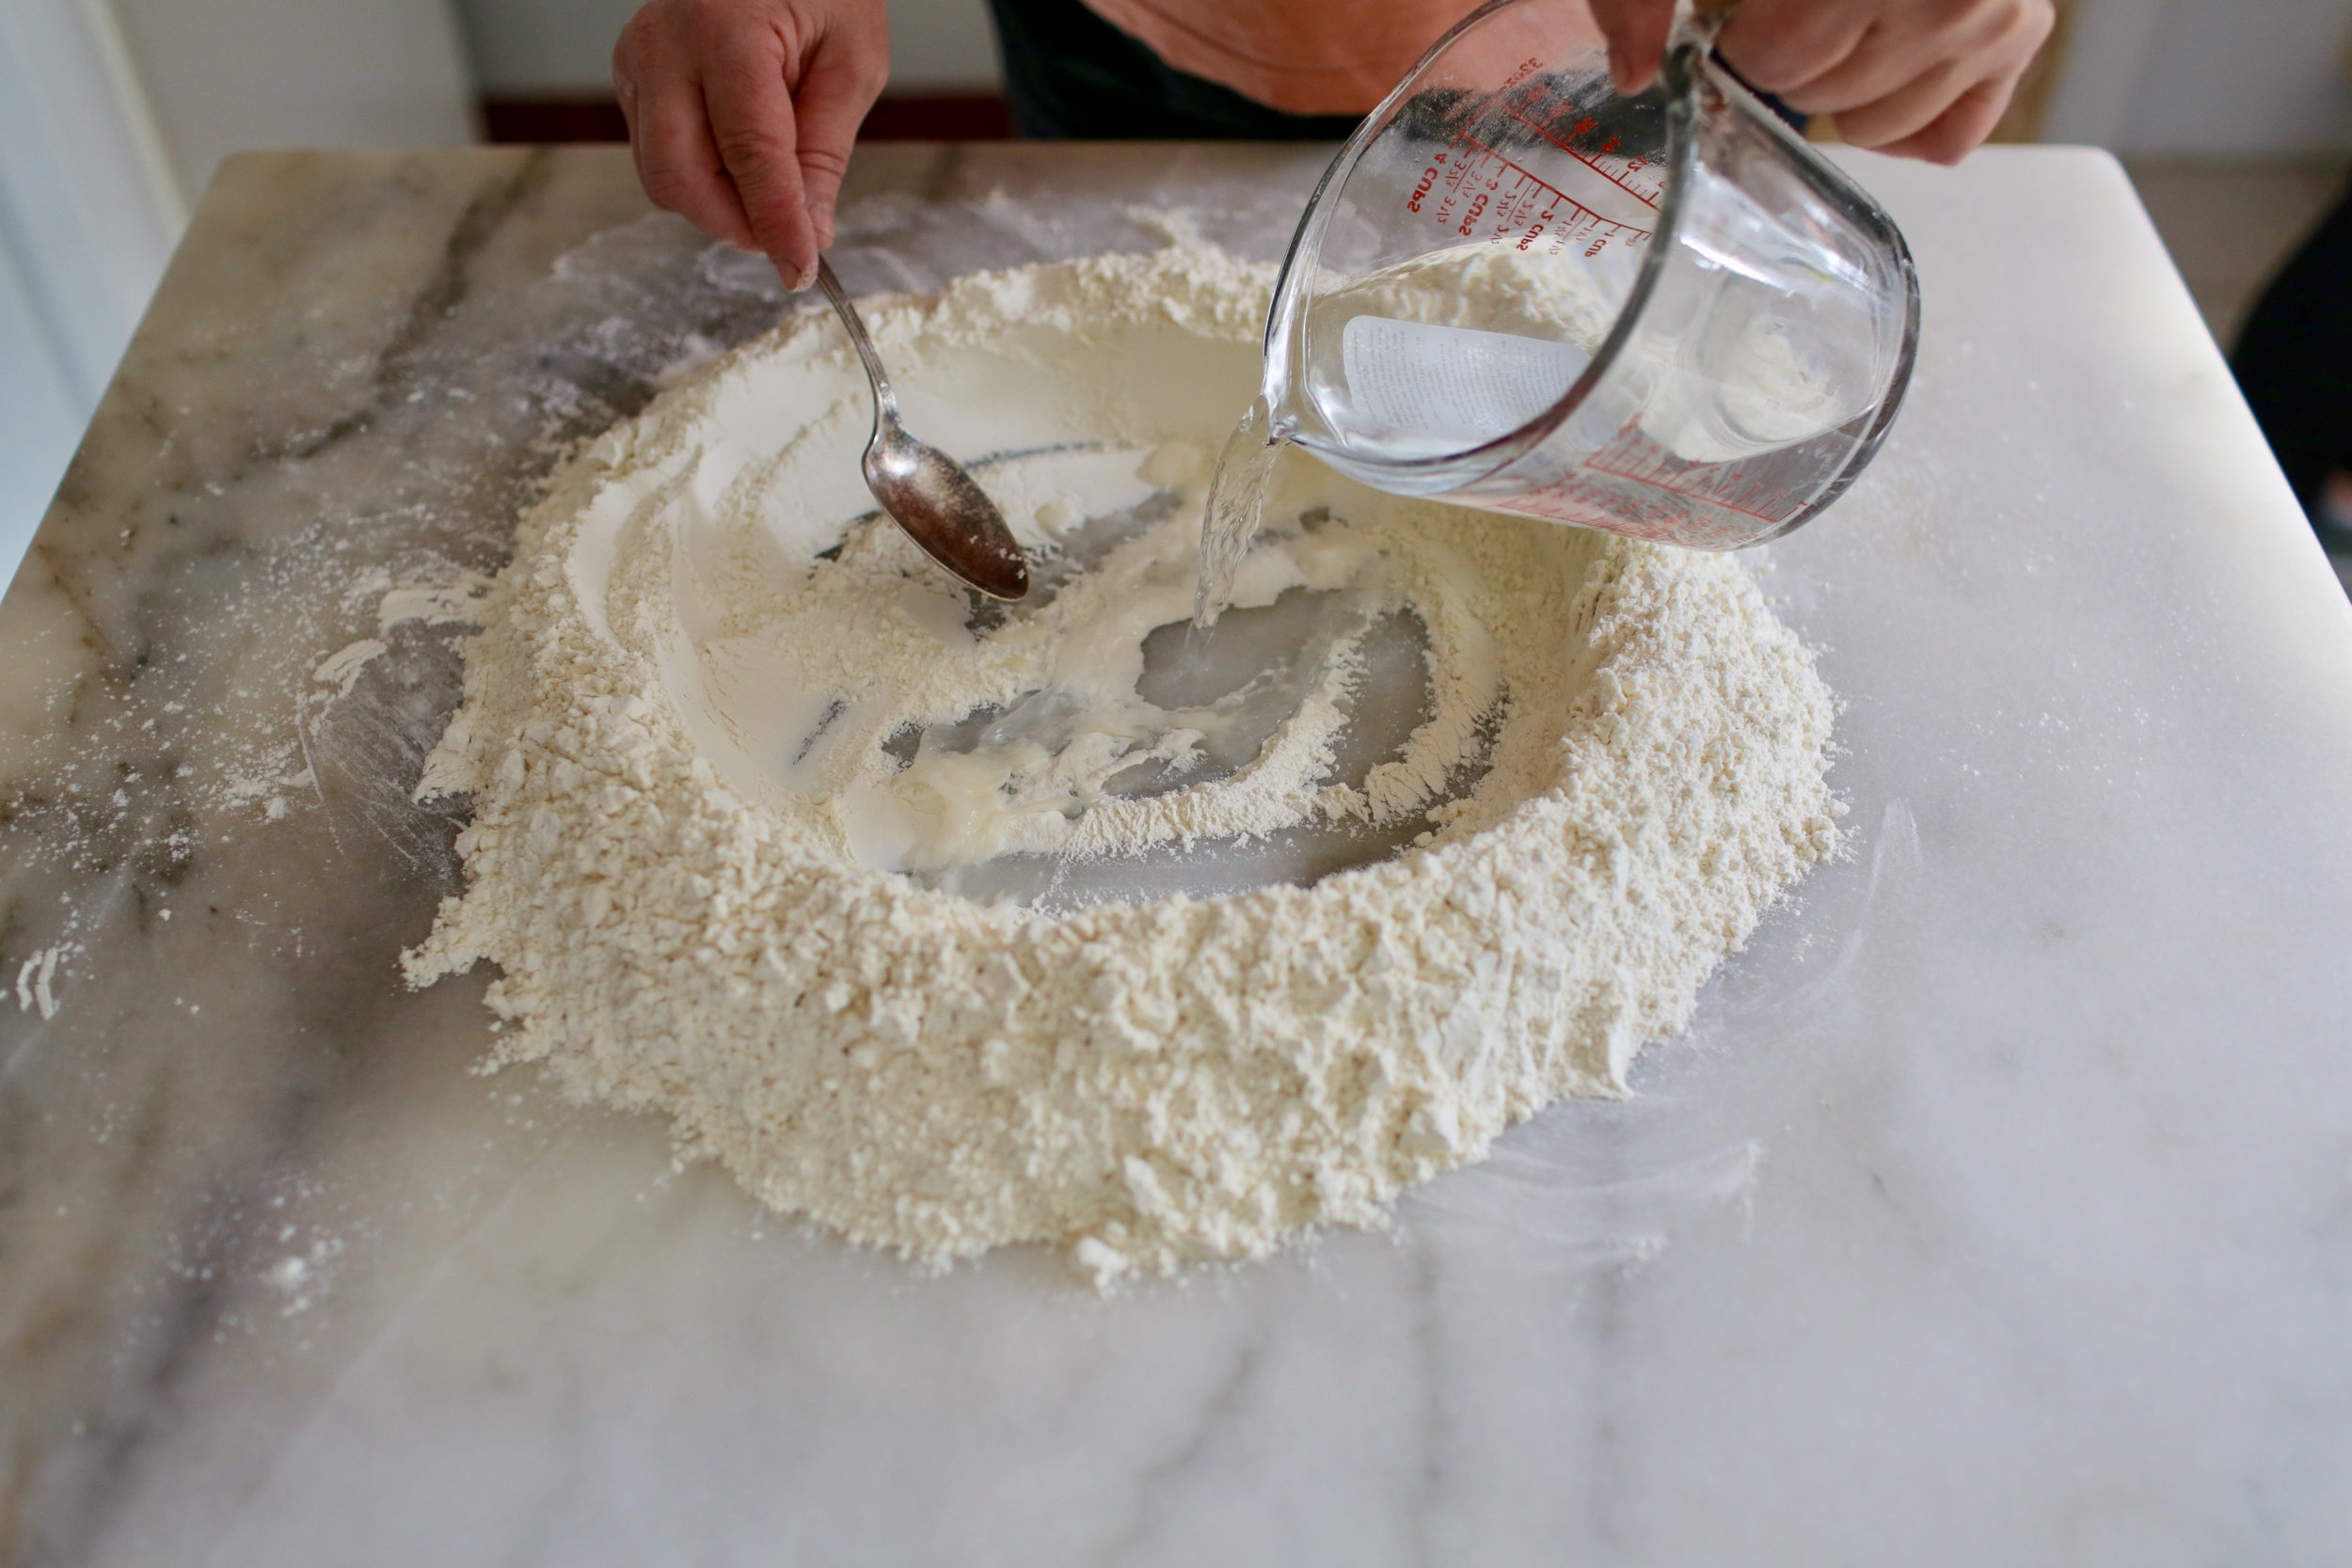 1. For dough, make a well in the flour and add water and salt.